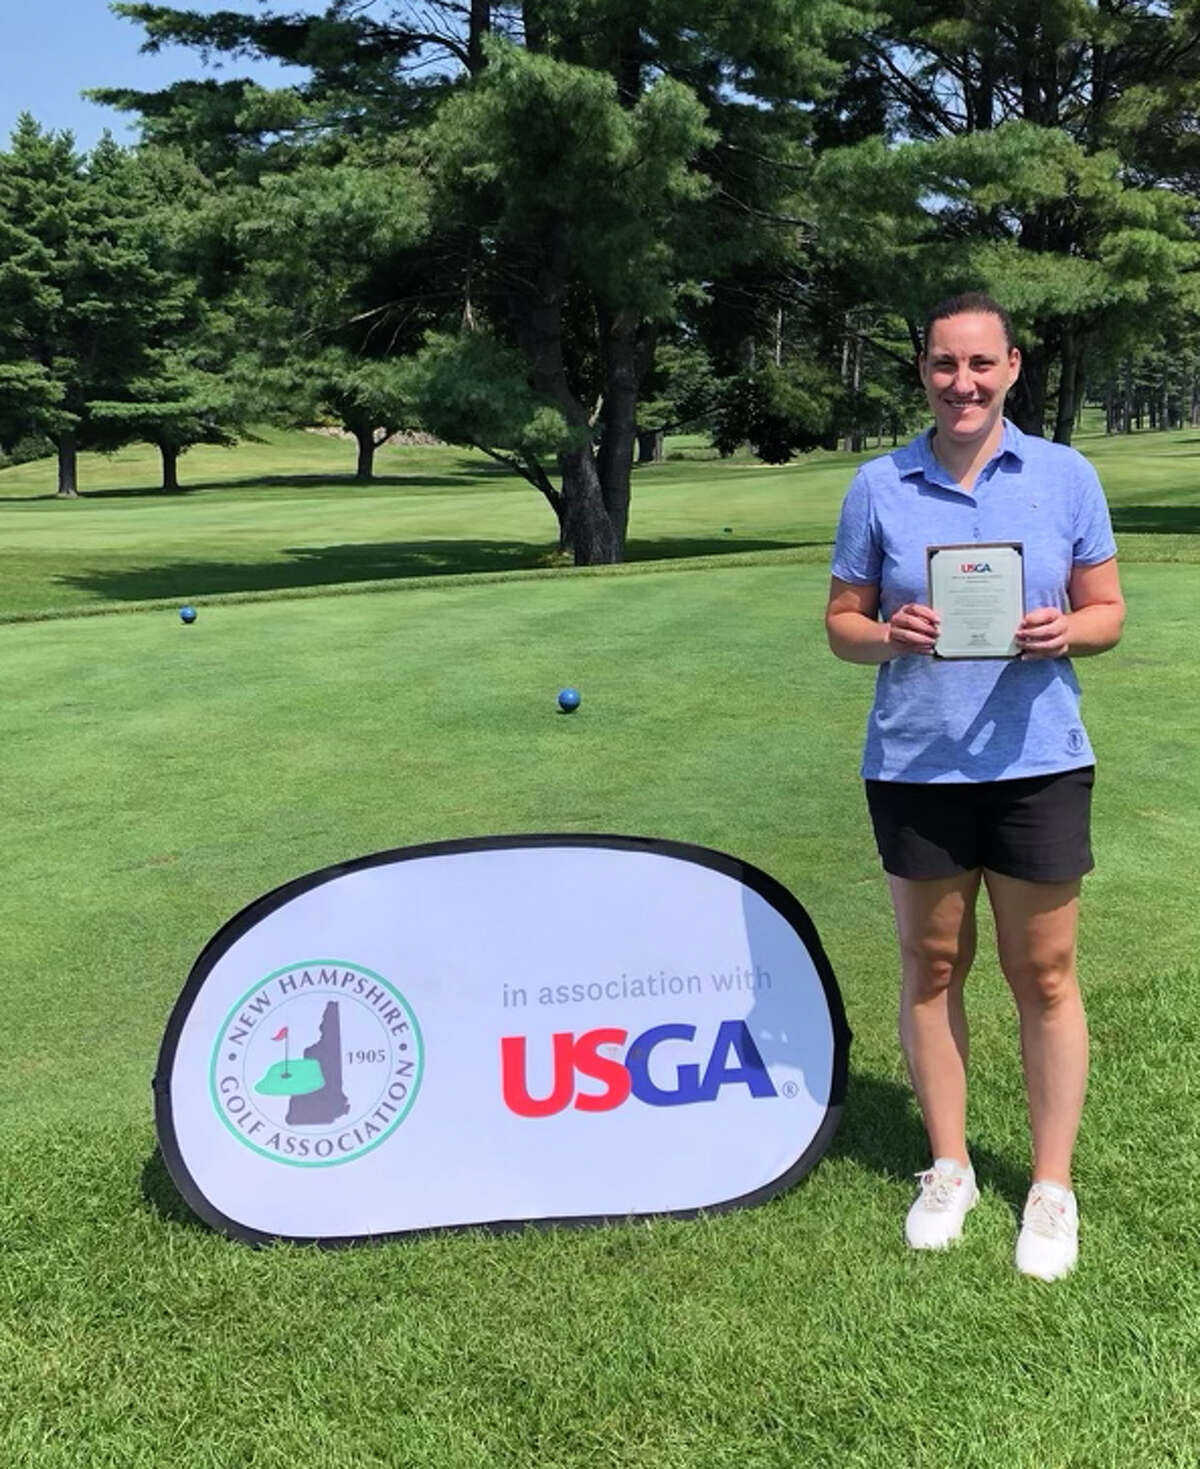 Sam Schuffenecker of Troy qualified for the U.S. Women's Mid-Amateur at Berkeley Hall Club's North Course in Bluffton, S.C. by shooting a 77 at the New Hampshire qualifier. (Provided)